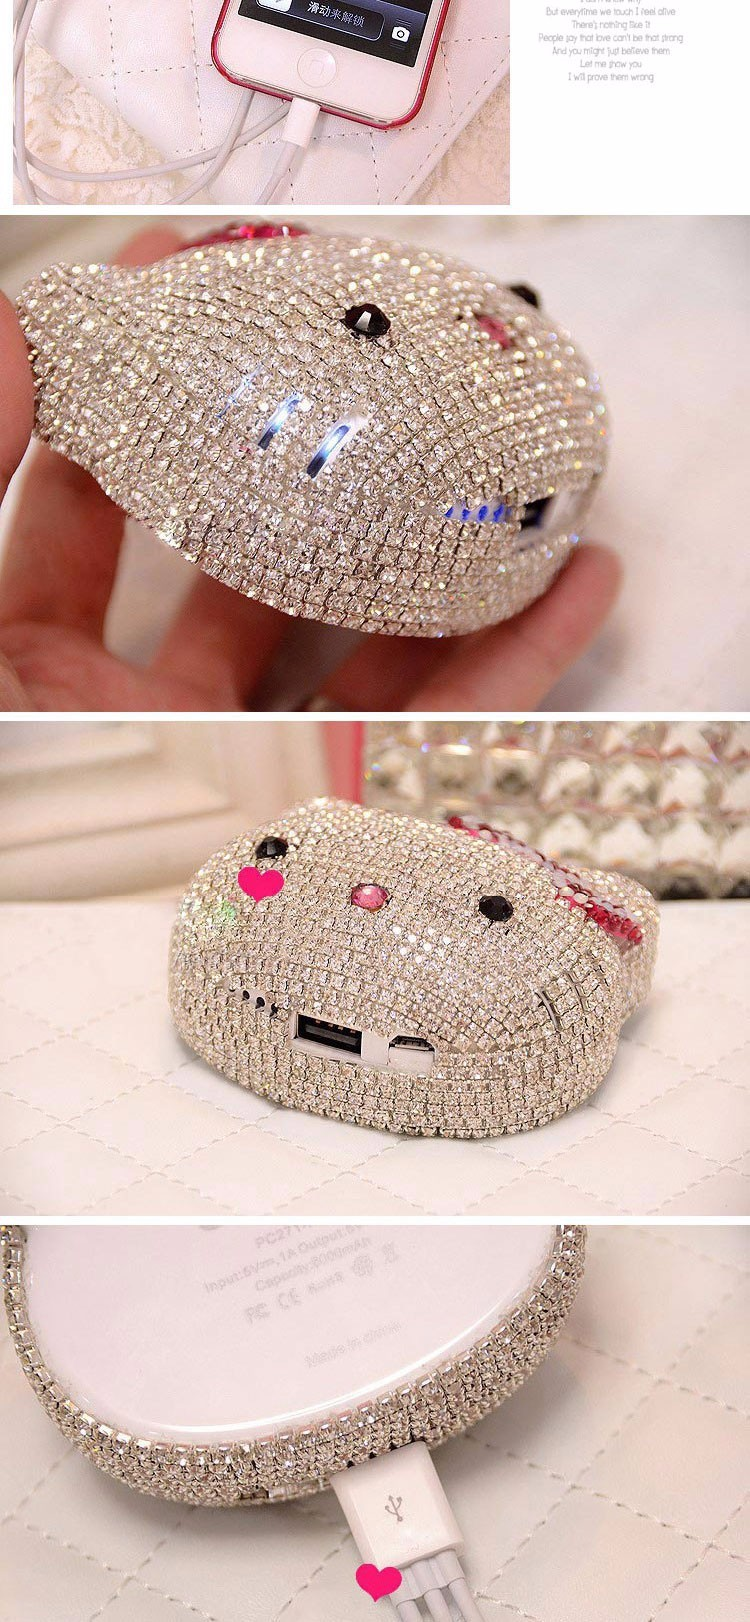 Bling Bling Pearl Diamond Hello Kitty 8000mAh Mobile Portable Power Source Bank USB Battery Charger For iphone Android Phones